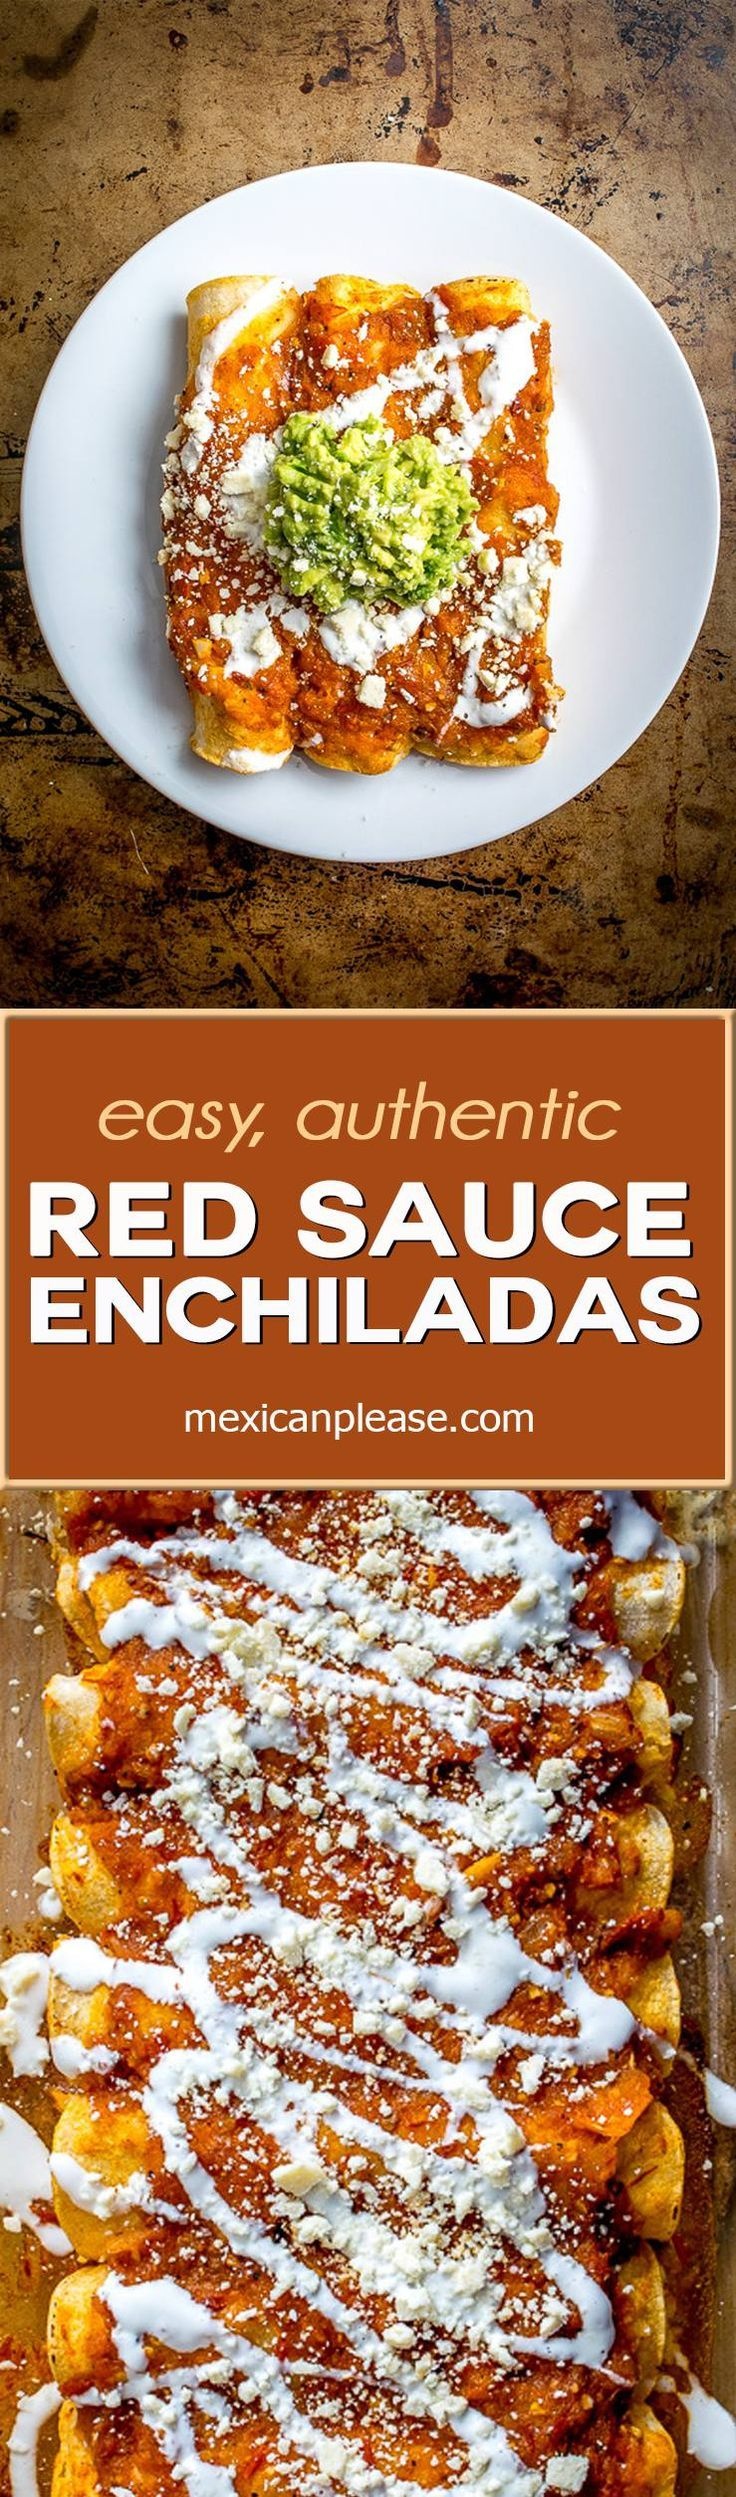 This is my go-to recipe for red sauce enchiladas.  Fast, incredible flavor, and stress free to make.  Sound too good to be true?  http://mexicanplease.com